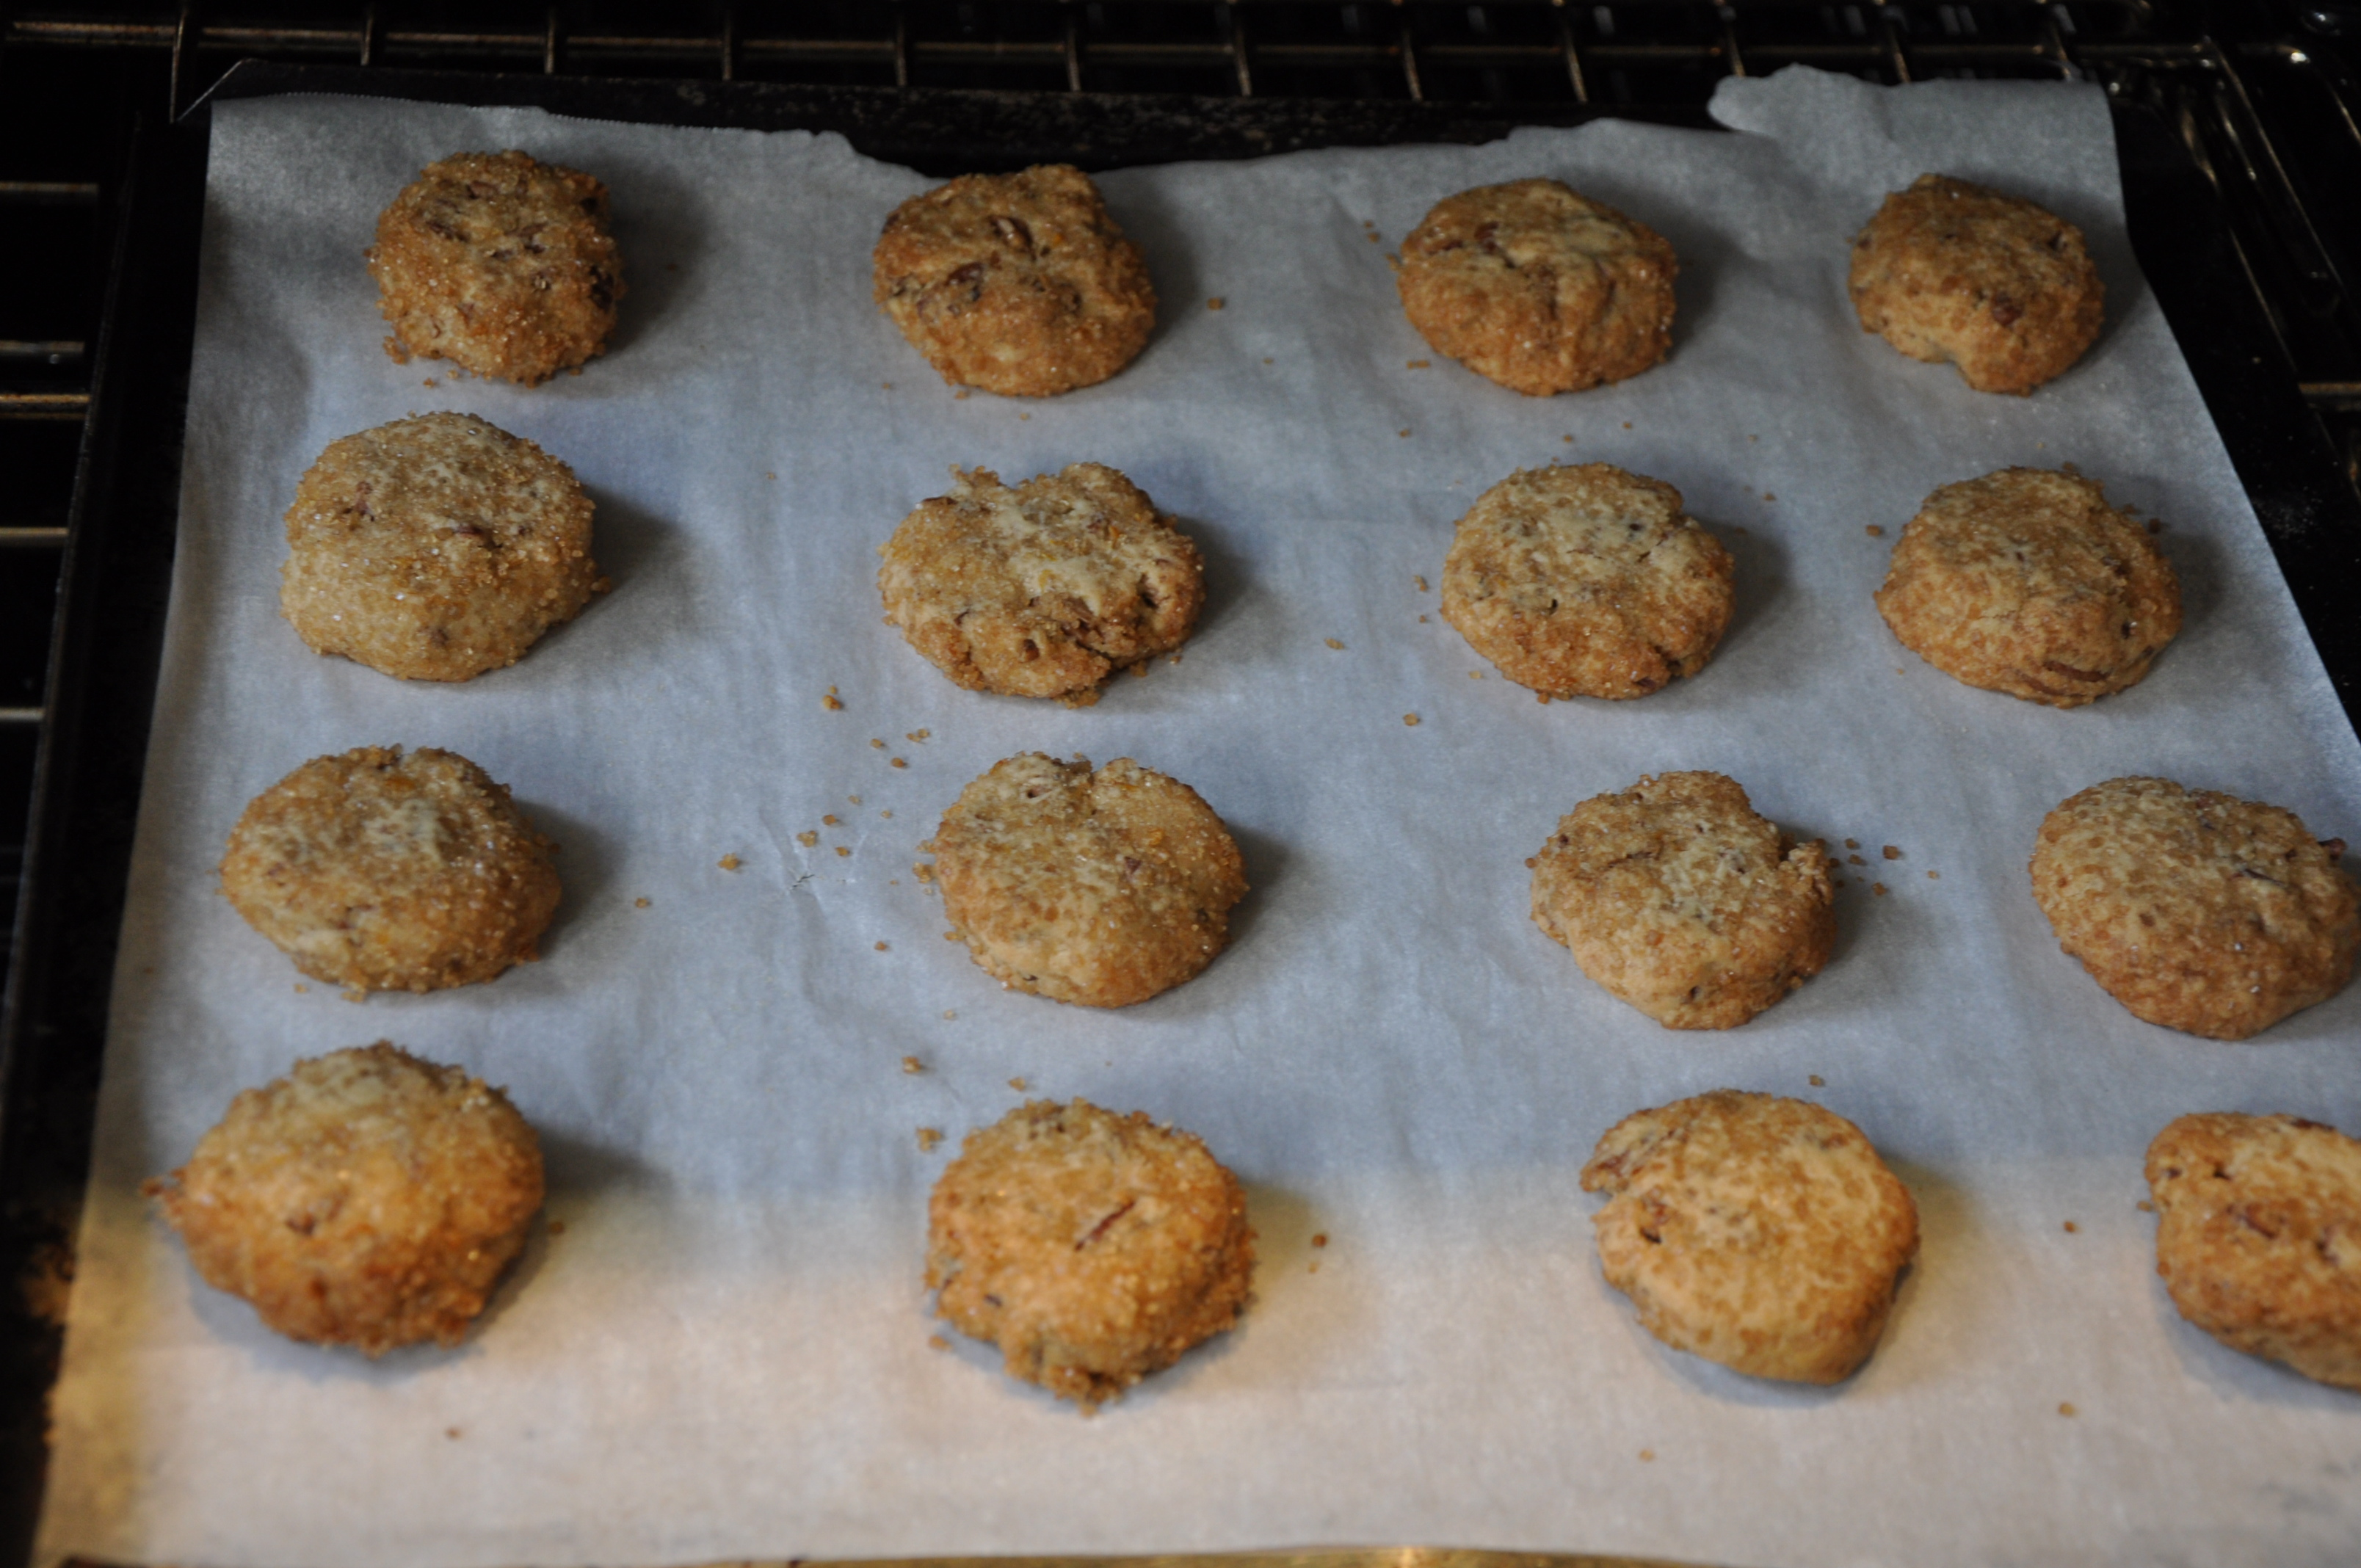 Crispy Cardamom-Brined Nut Cookies